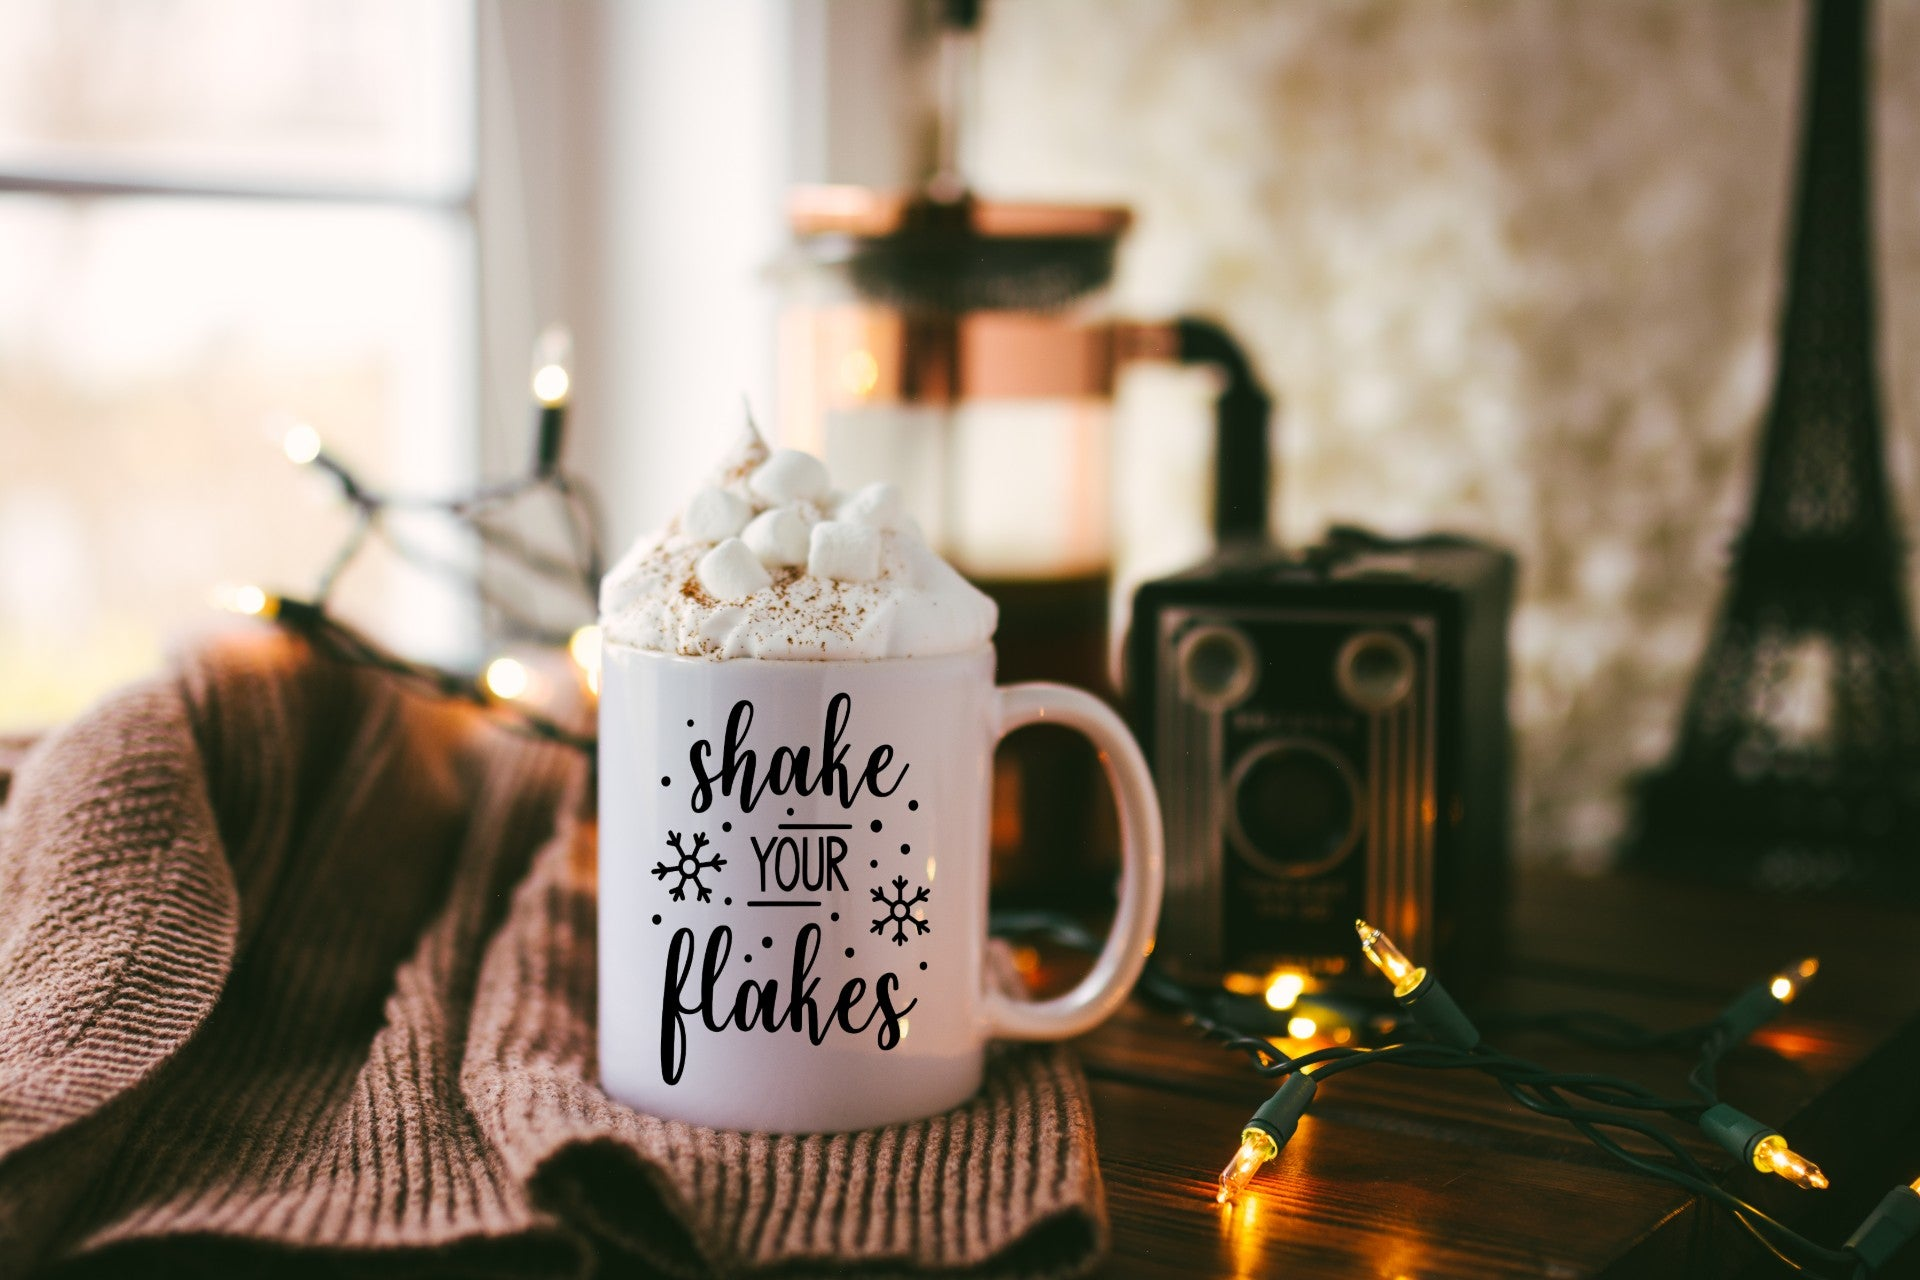 Shake your flakes Deluxe Mug 11oz or 15oz